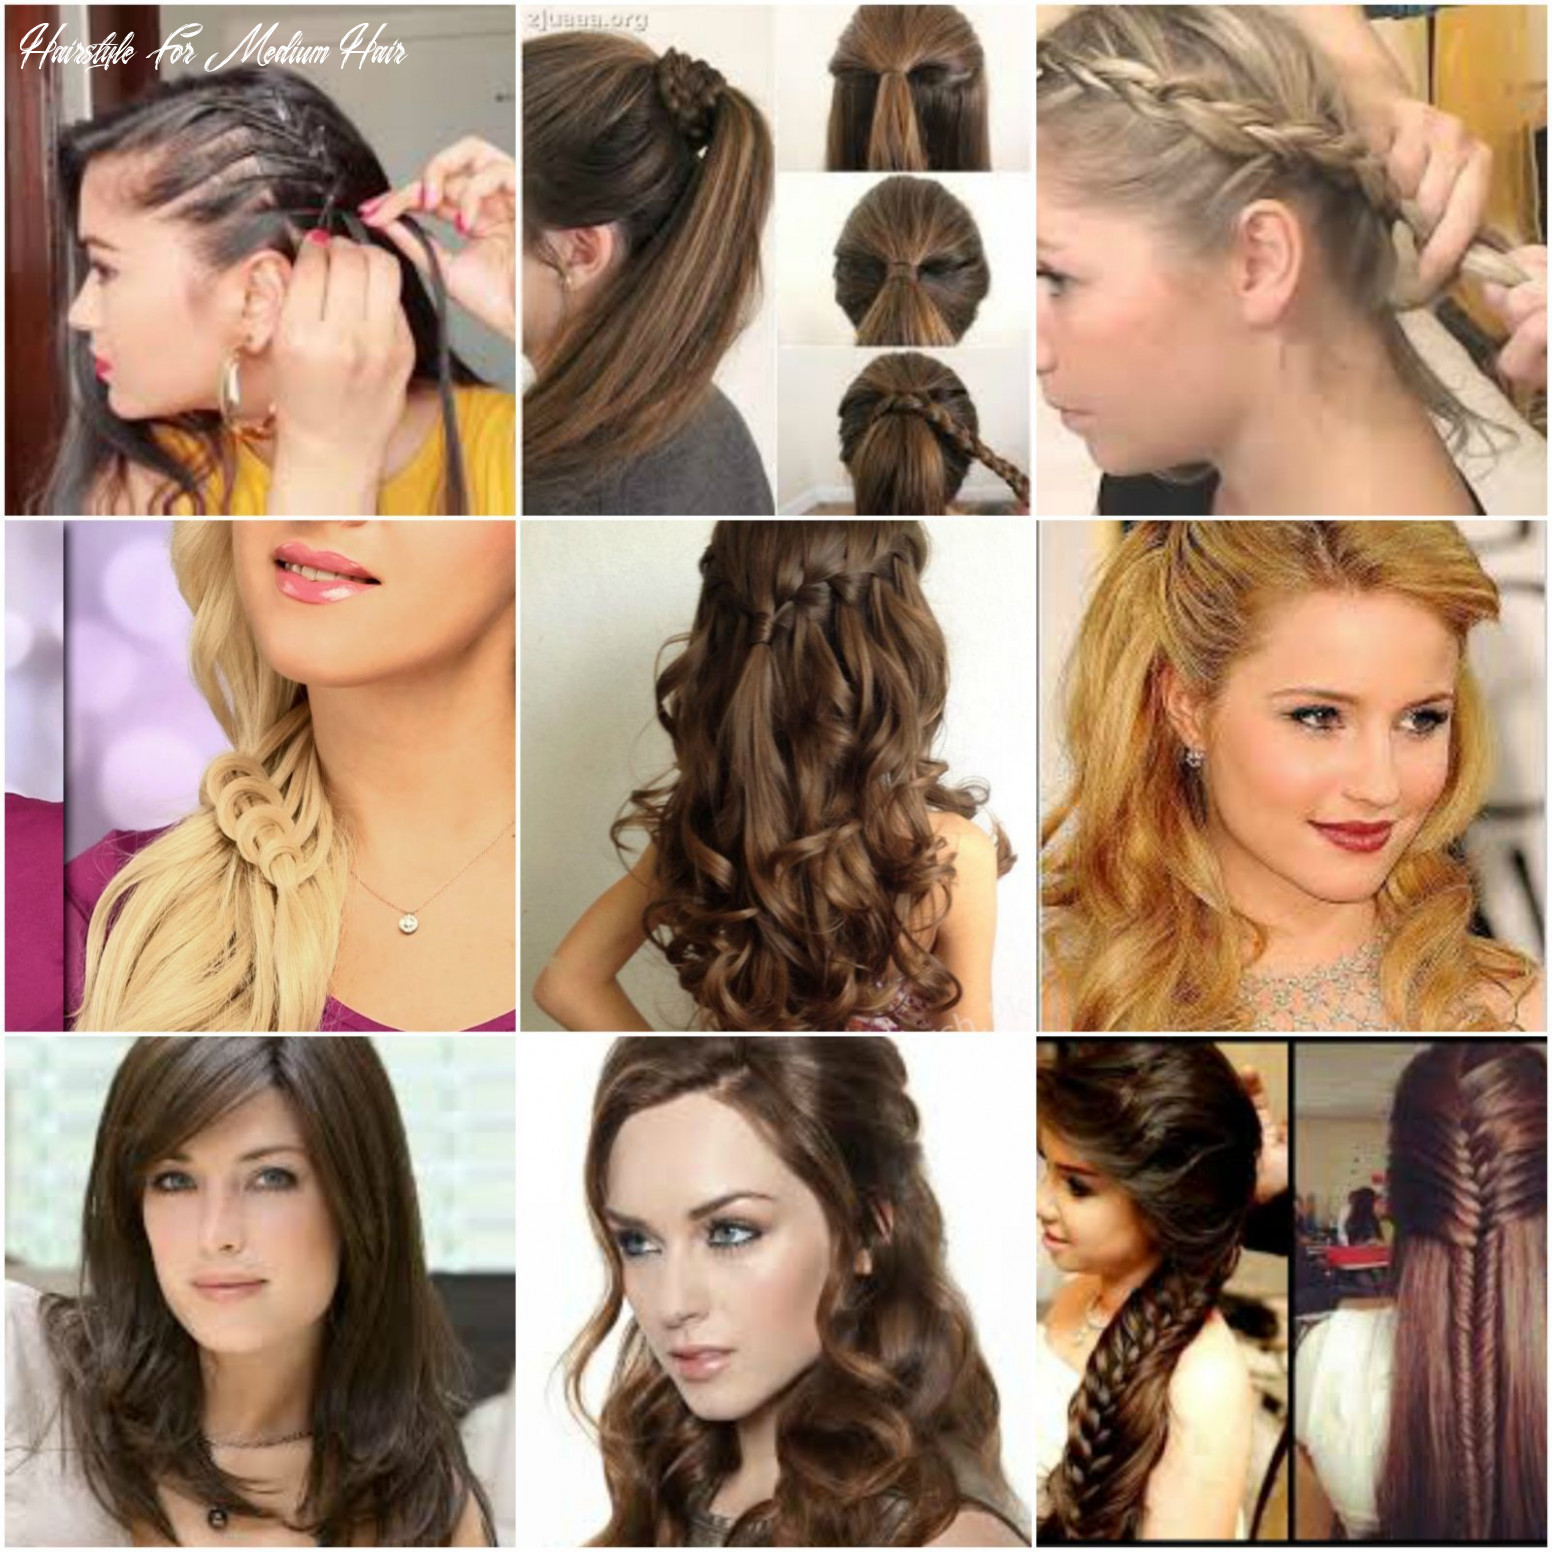 11 easy hairstyles for medium hair for party in 11 hairstyle for medium hair